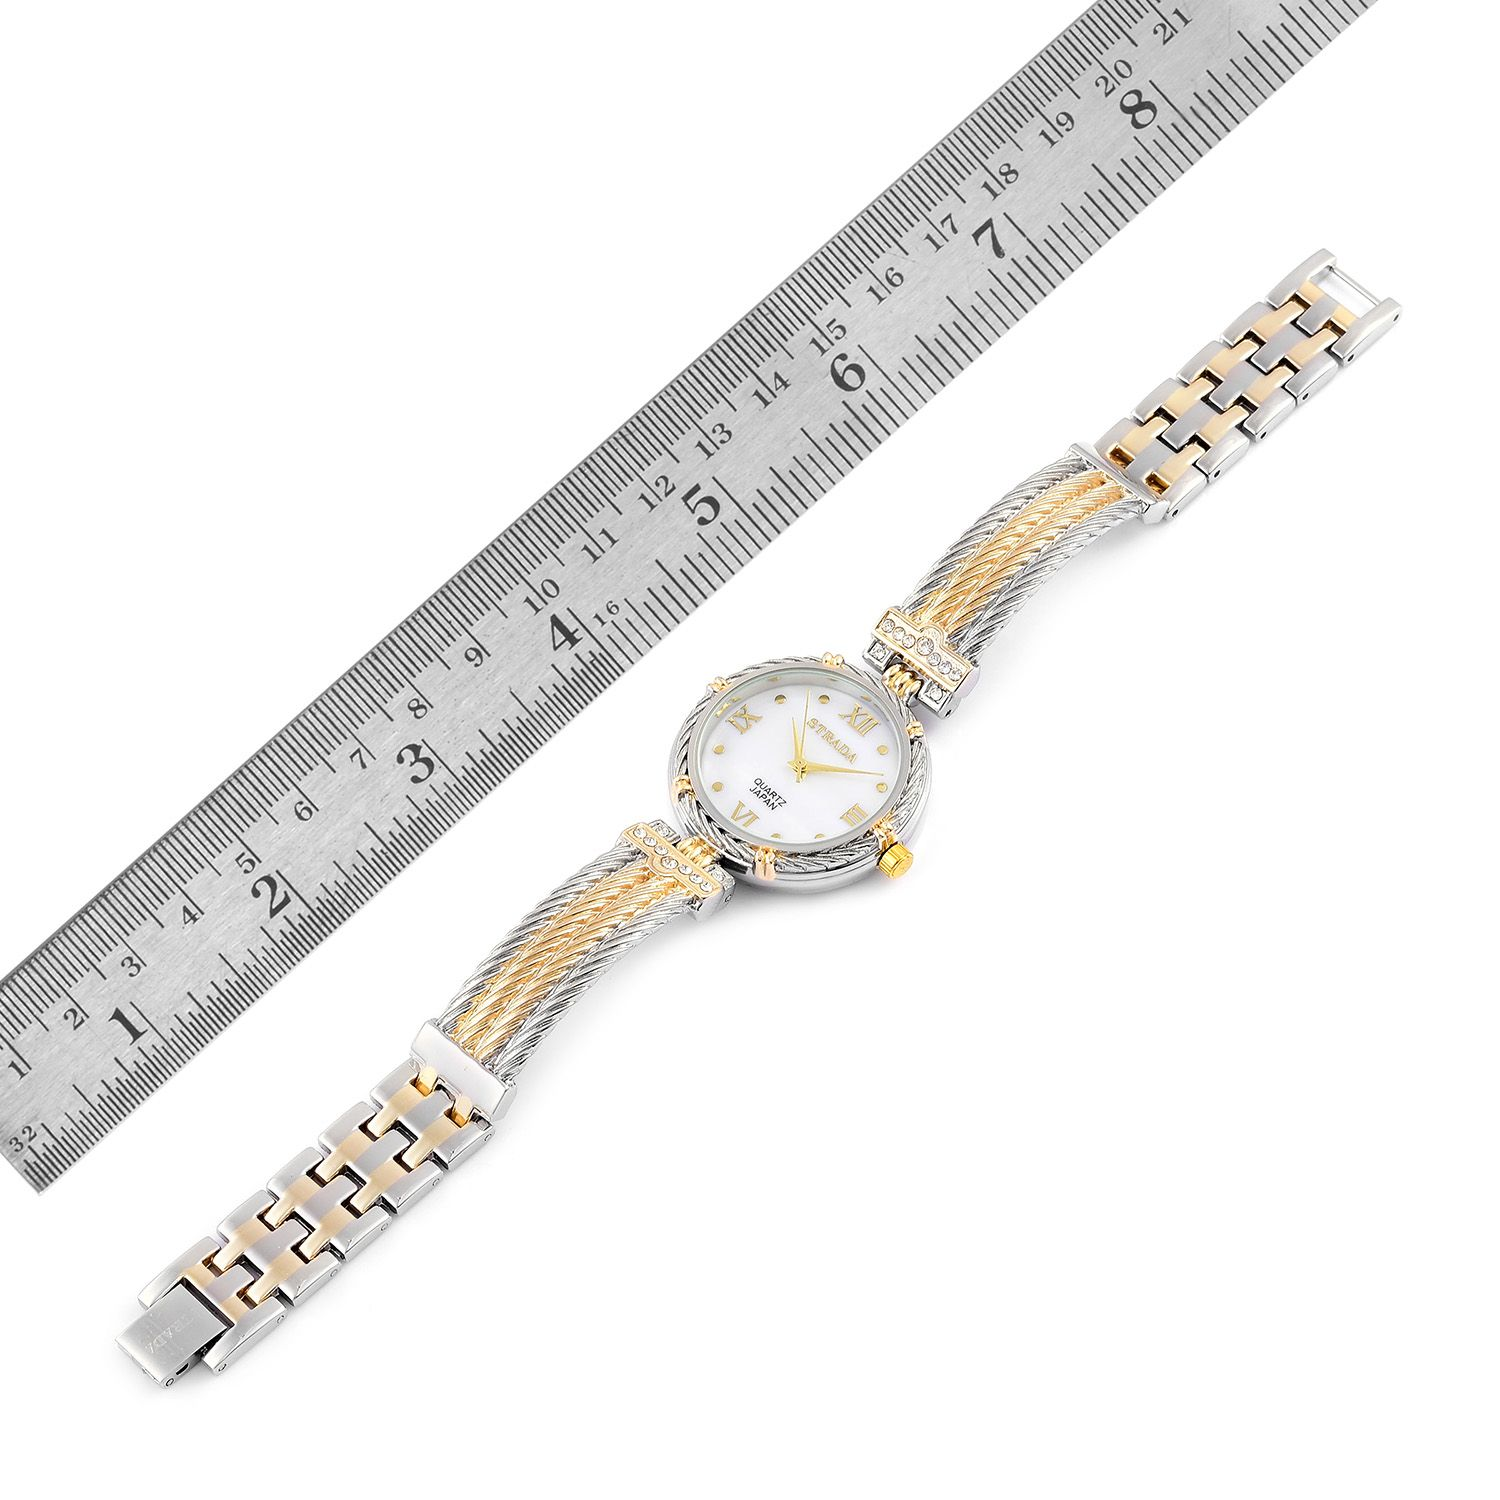 STRADA White Austrian Crystal Japanese Movement Watch in Dualtone with Stainless Steel Back